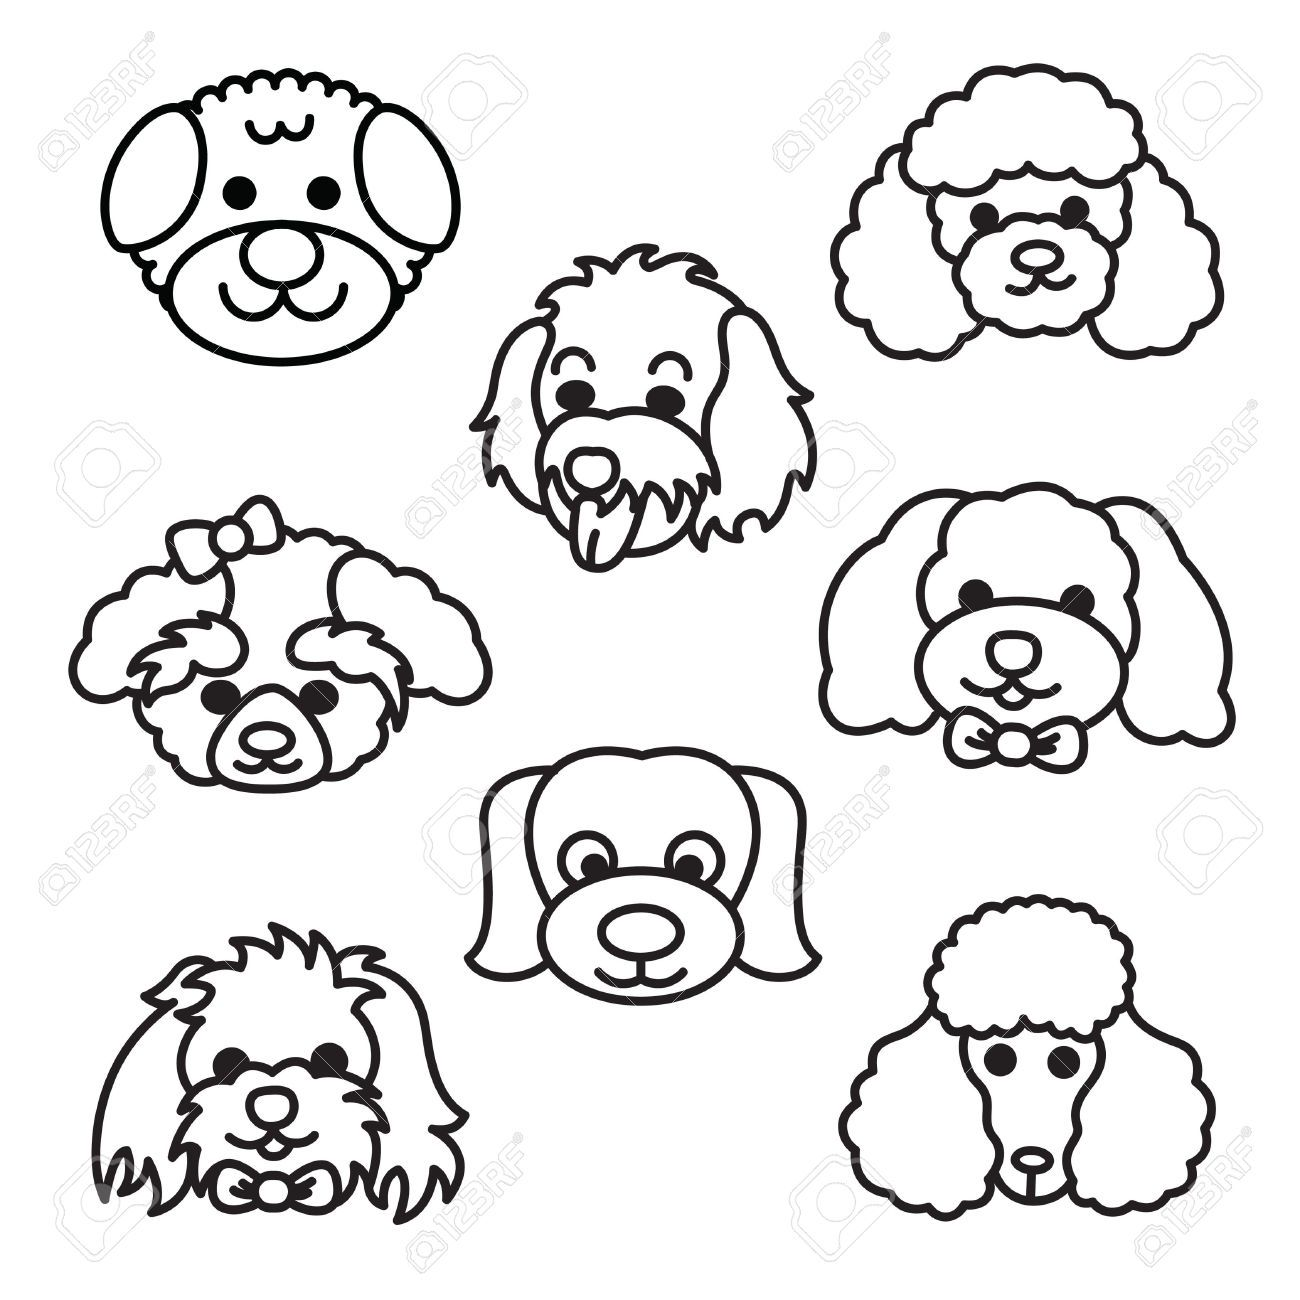 Stock Vector In 2020 Dog Face Drawing Cartoon Dog Poodle Drawing